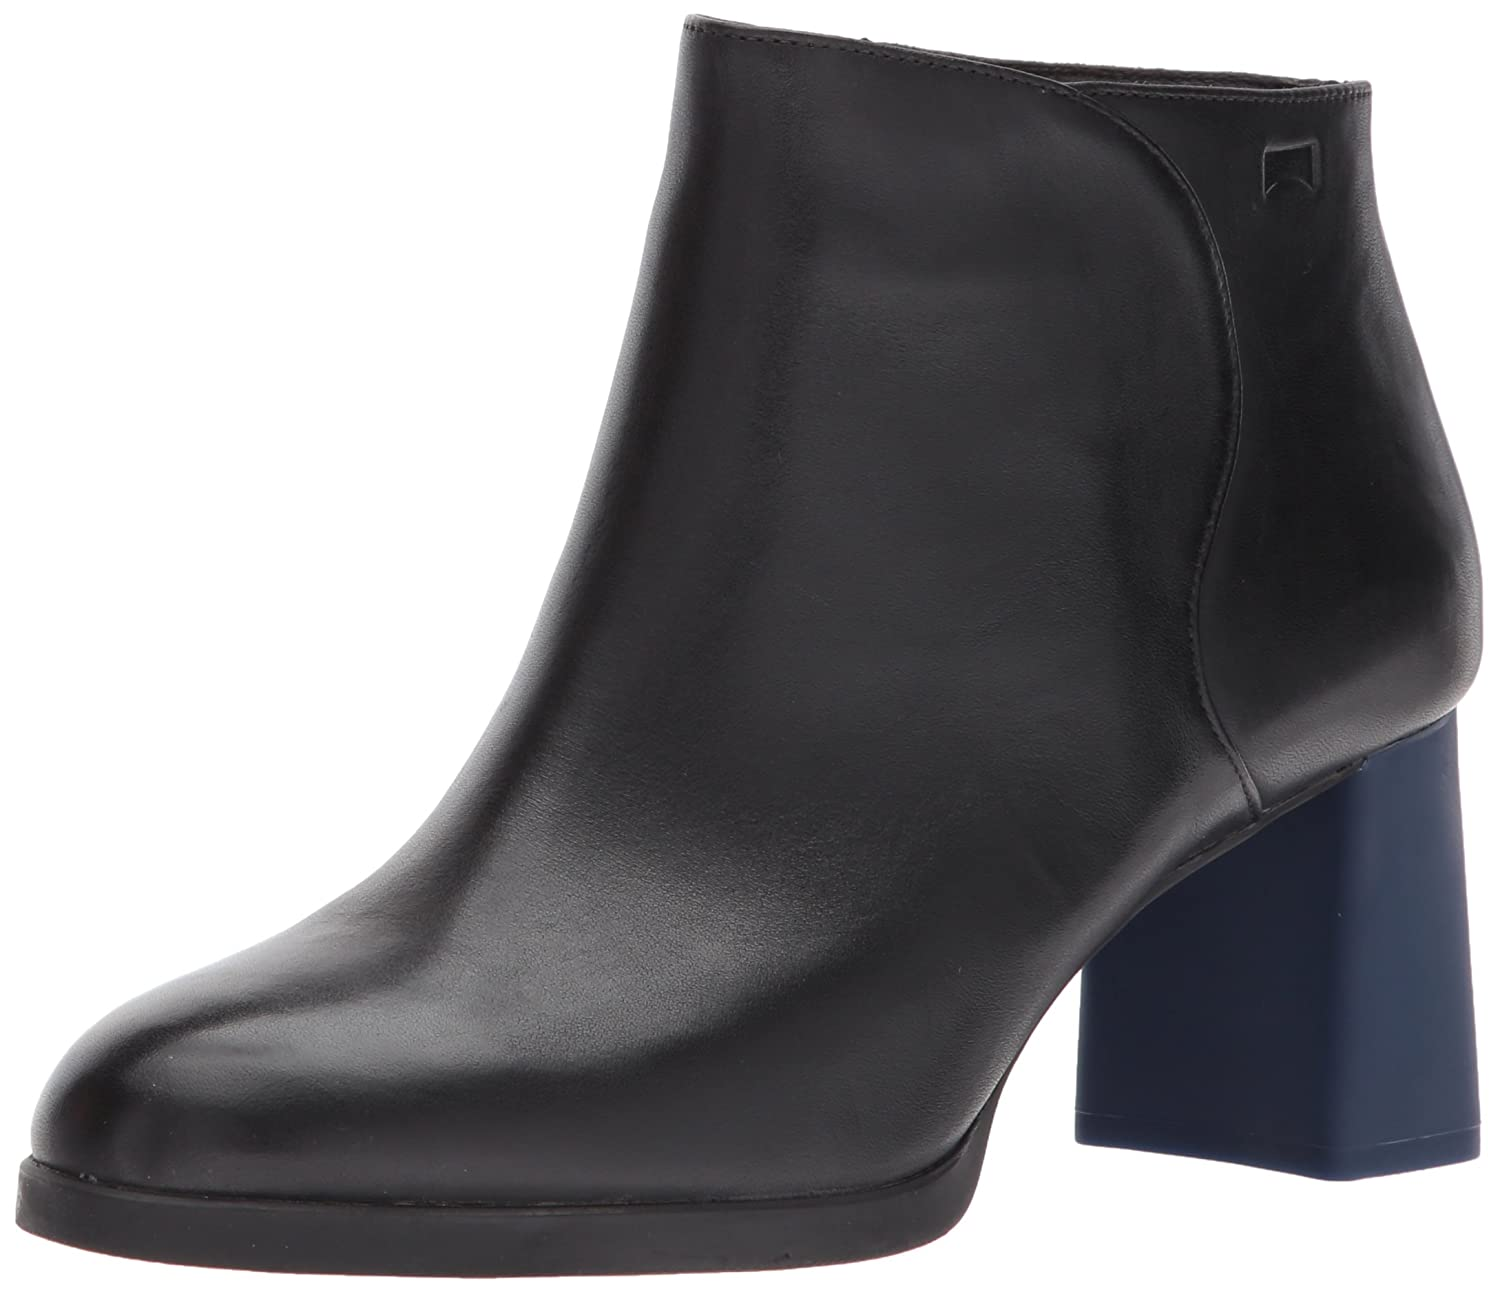 Camper Women's Kara K400208 Fashion Boot B01MRBKPZJ 38 M EU (8 US)|Black